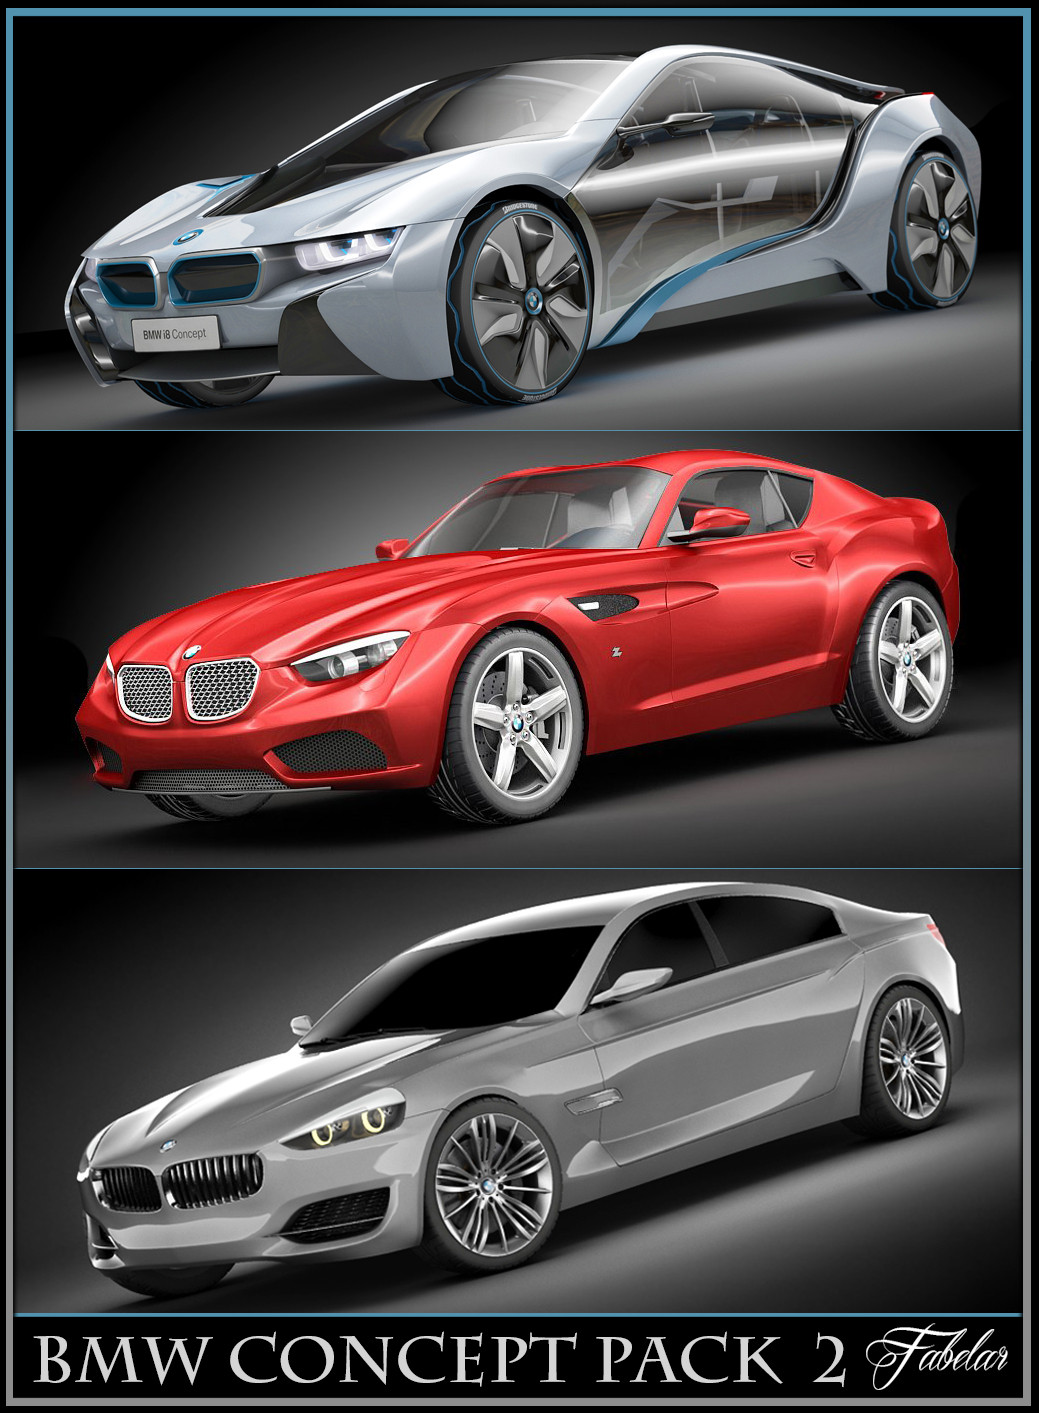 BMW concept pack 2